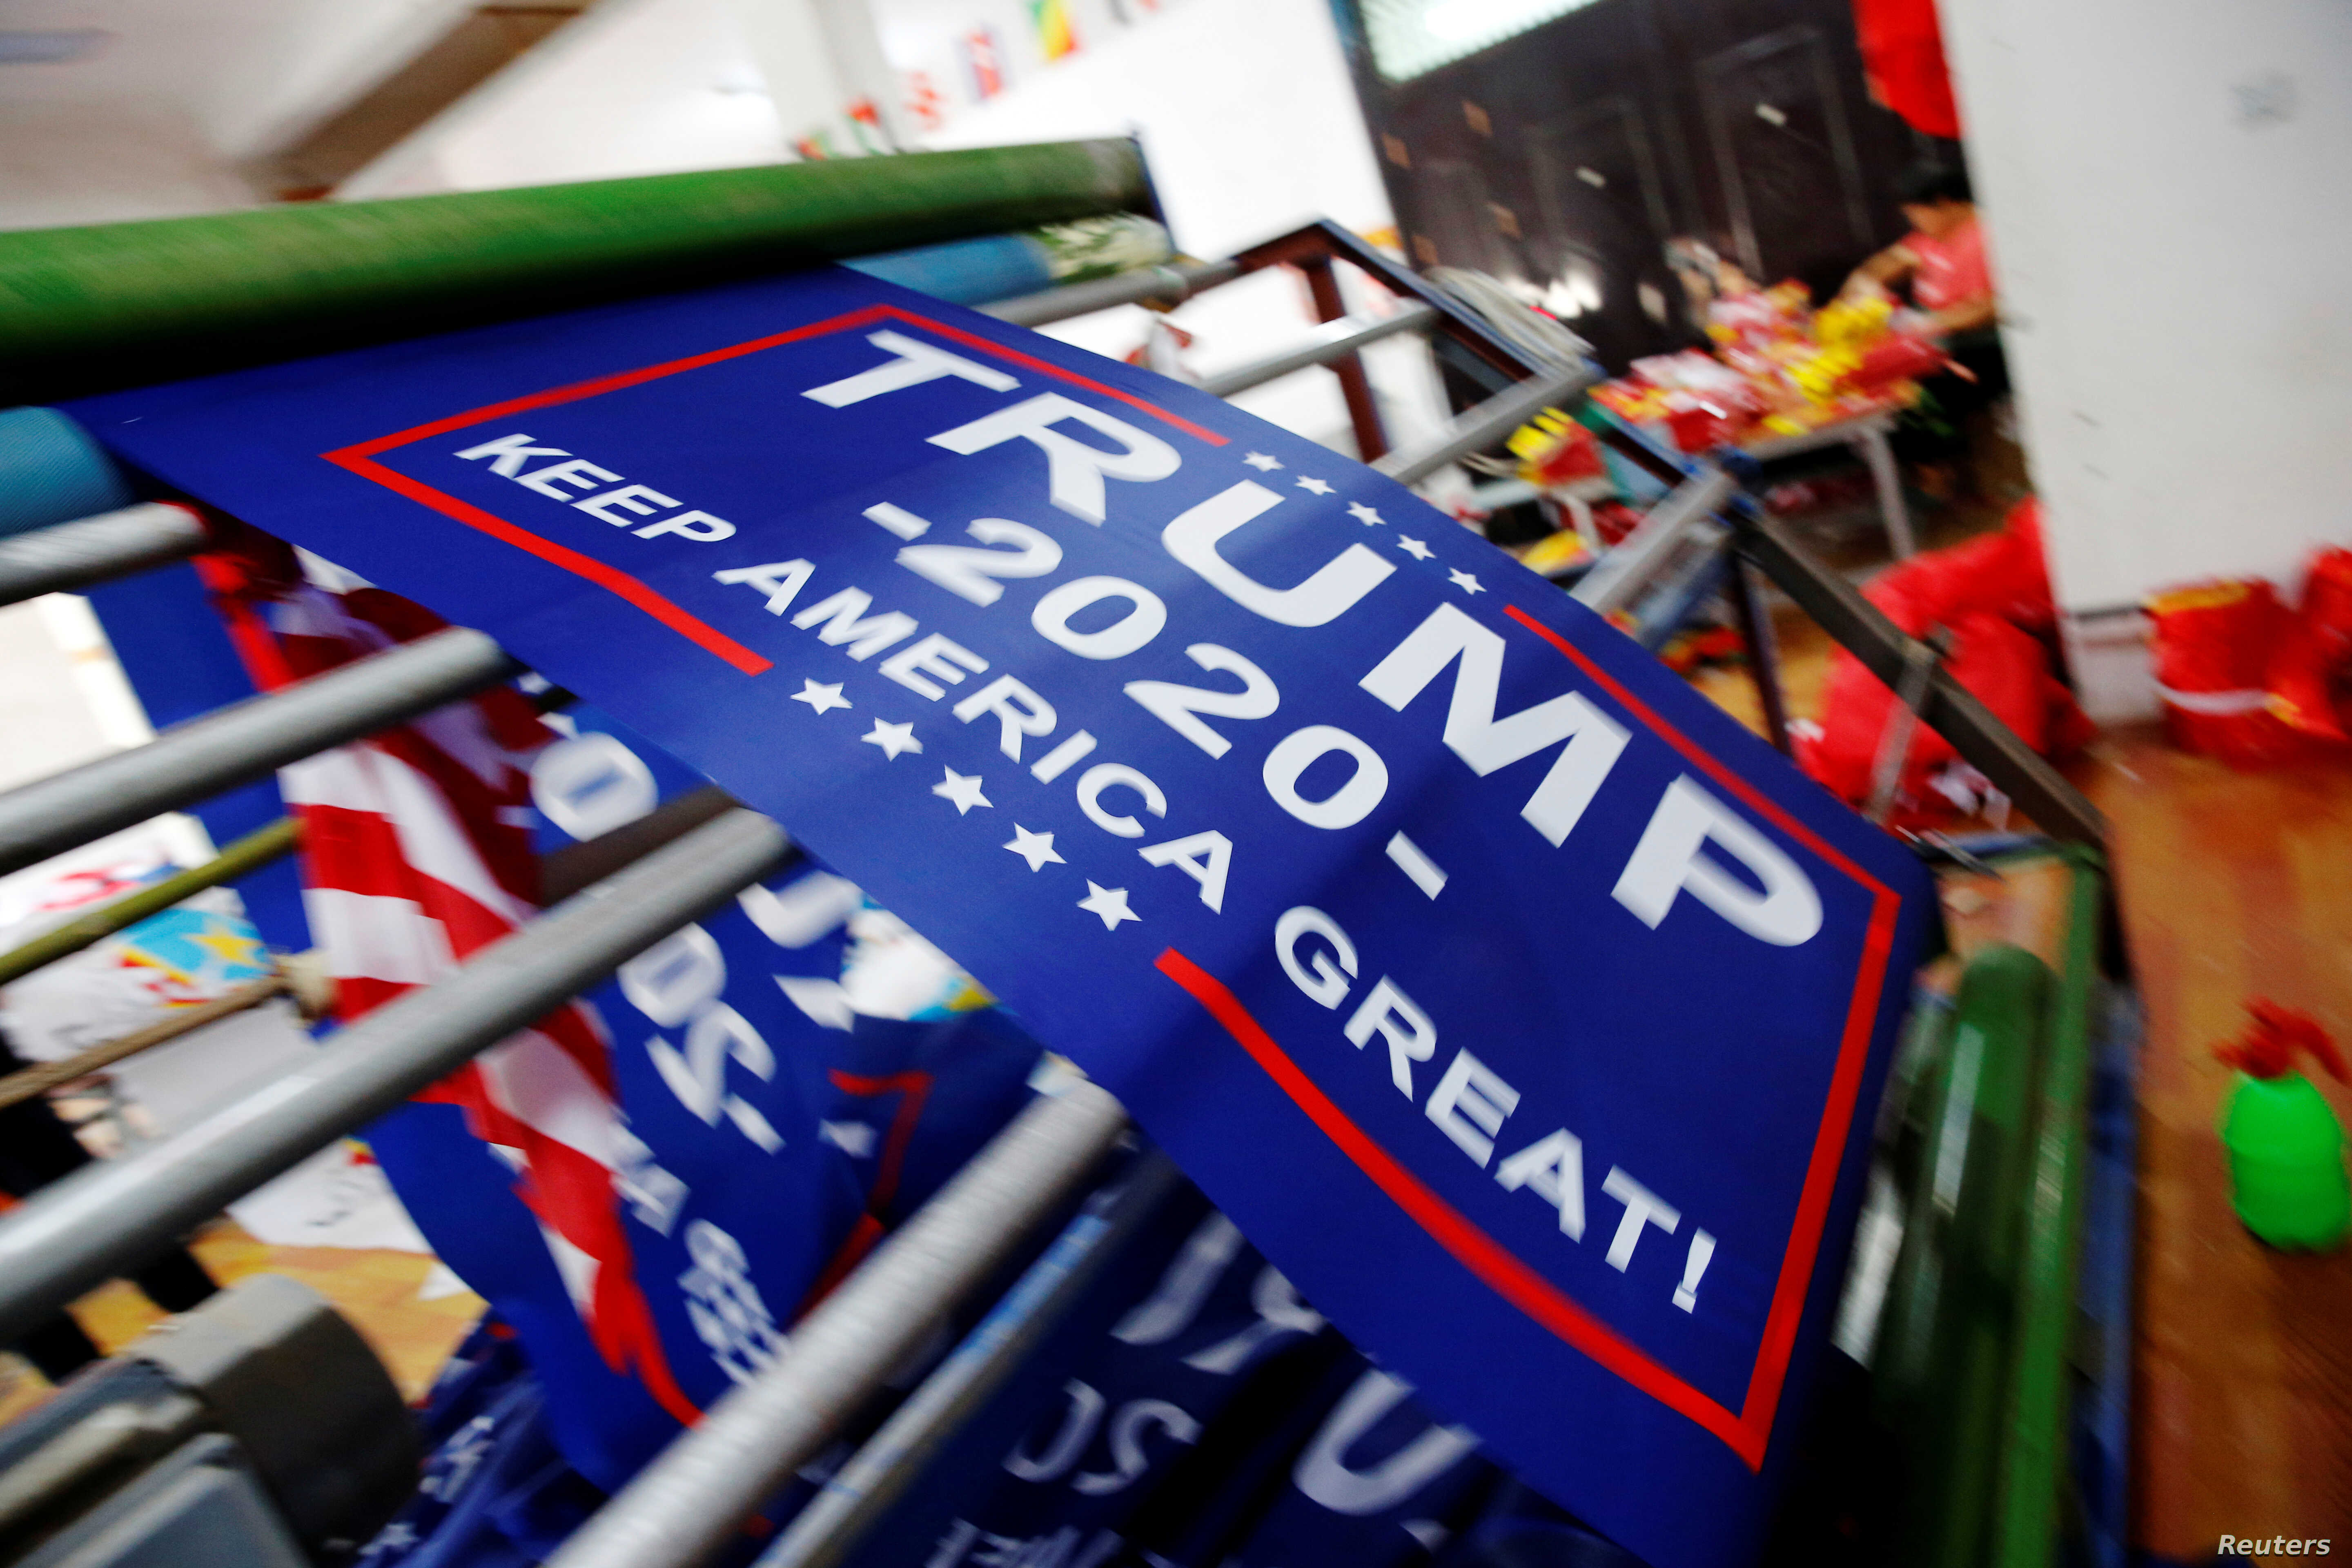 Trump Re-Election Flags Ordered Early, May Avoid Tariffs on